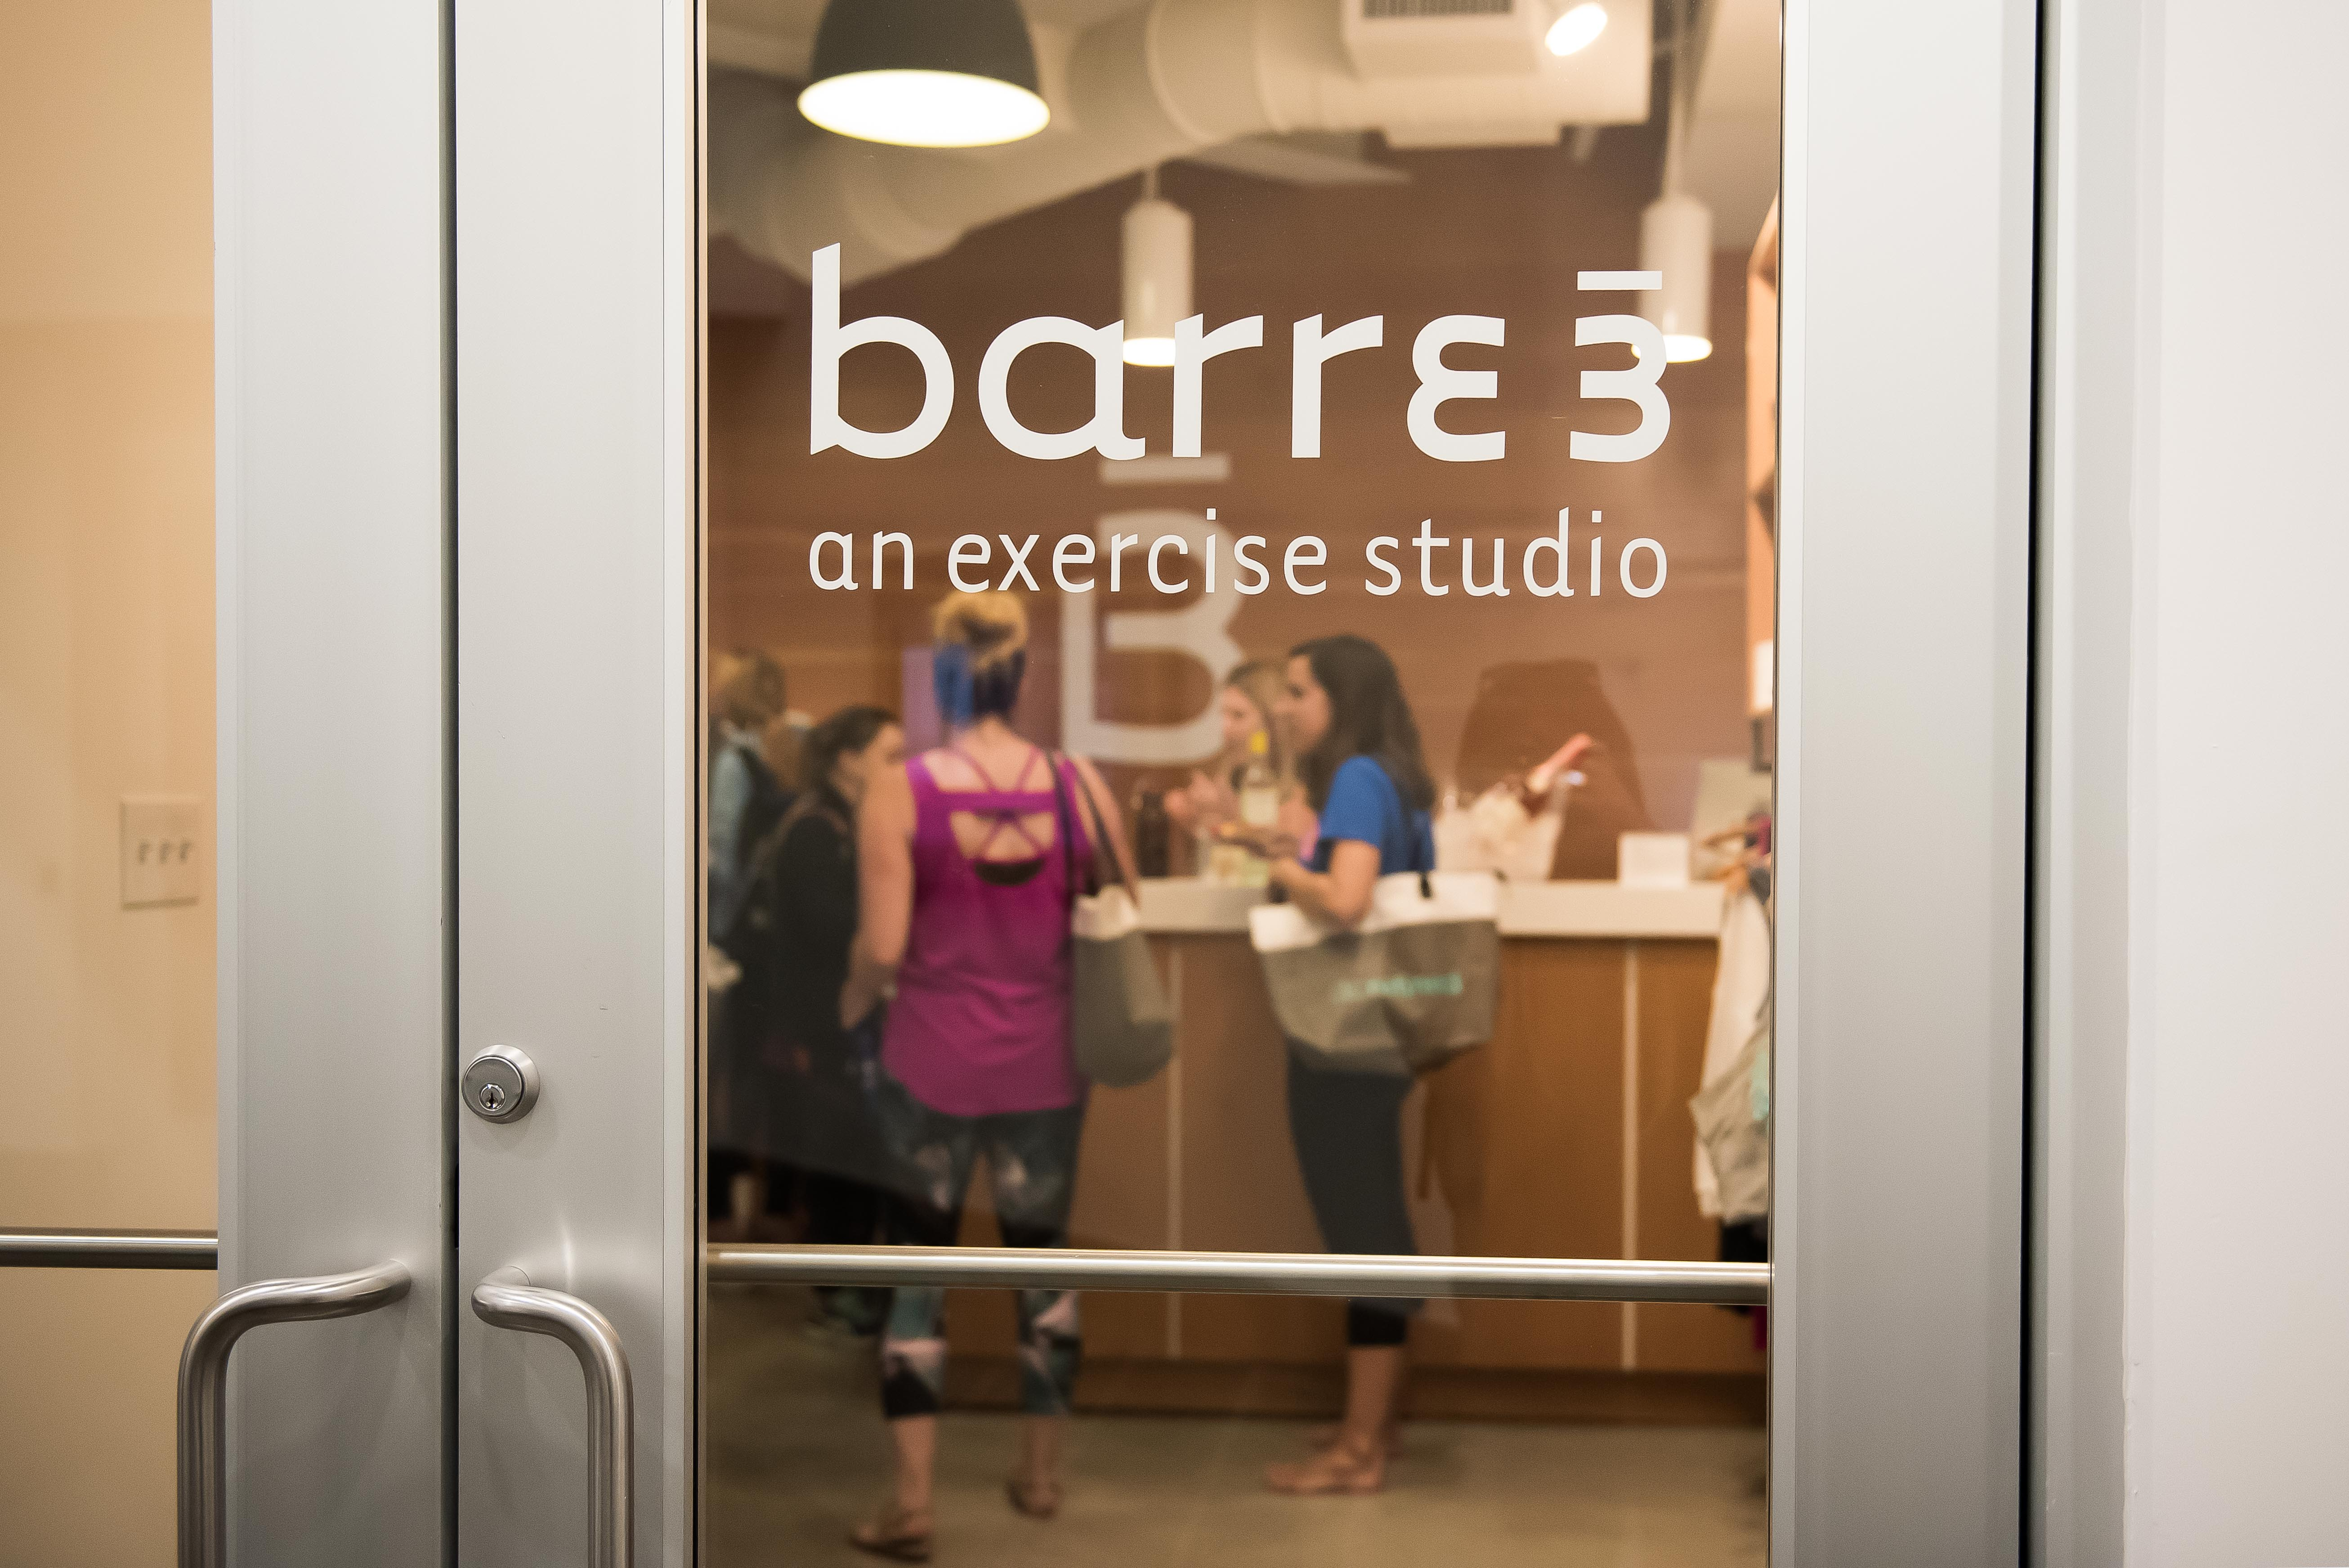 Workouts are always better with a friend, right? Well, that was definitely our thought process as we hosted 15 DC Refined readers for a barre3 class with owner Jill Warren on Tuesday October 17. If we were going to sweat and pulse and shake, we might as well do it with some friends! Guests were treated to a 60-minute class taught by Jill herself, followed by a little mingling with wine, cheese, crackers and strawberries. As one guest said, we will ALWAYS workout for wine! (Image: Joy Asico)